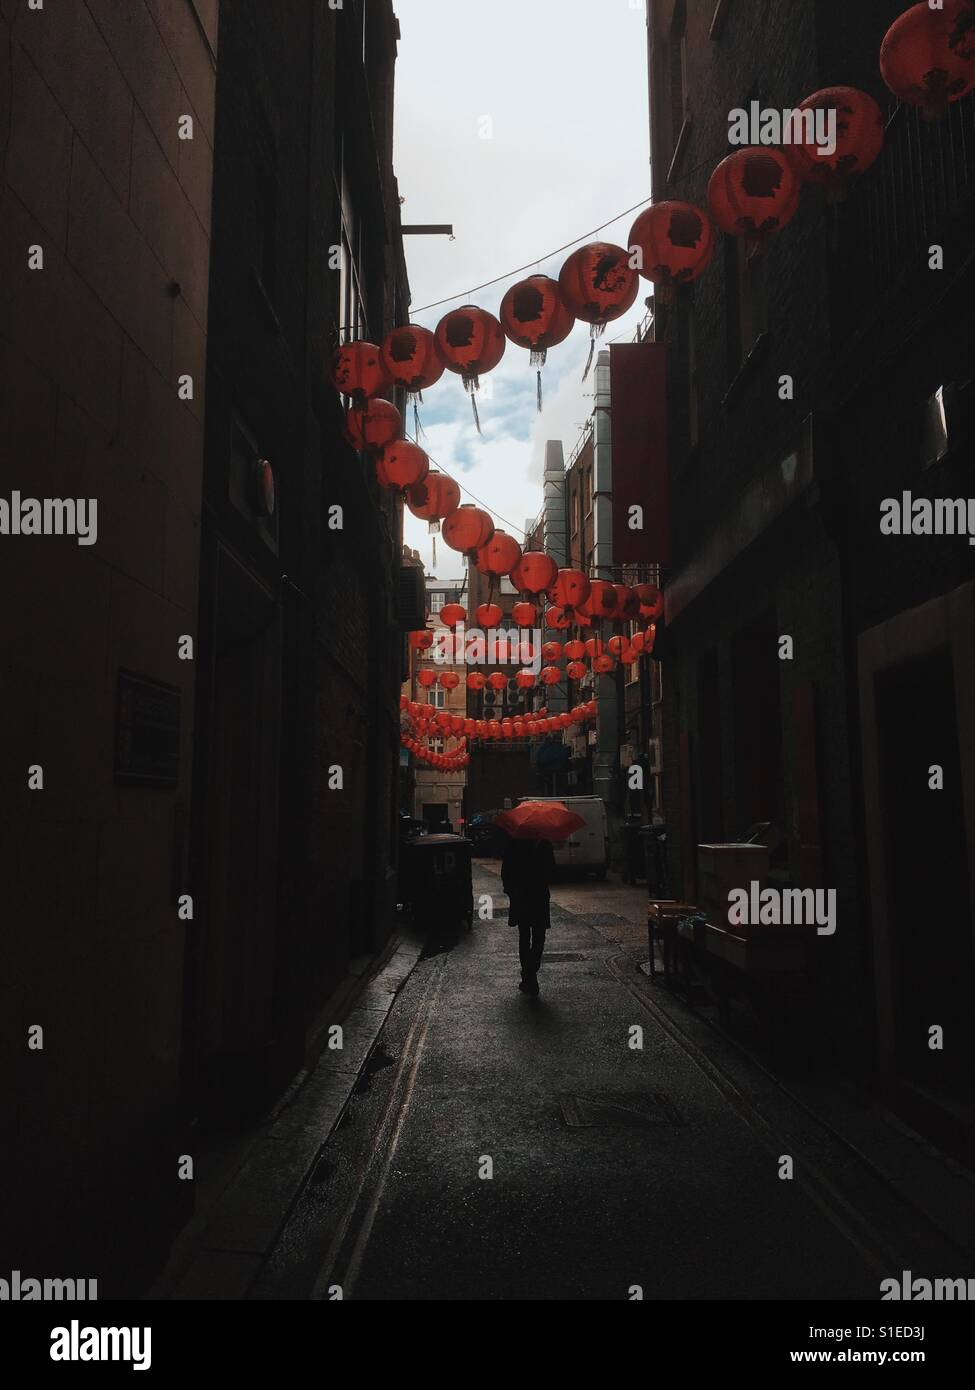 Man with a red umbrella waking in London's China Town Soho May 2017 - Stock Image